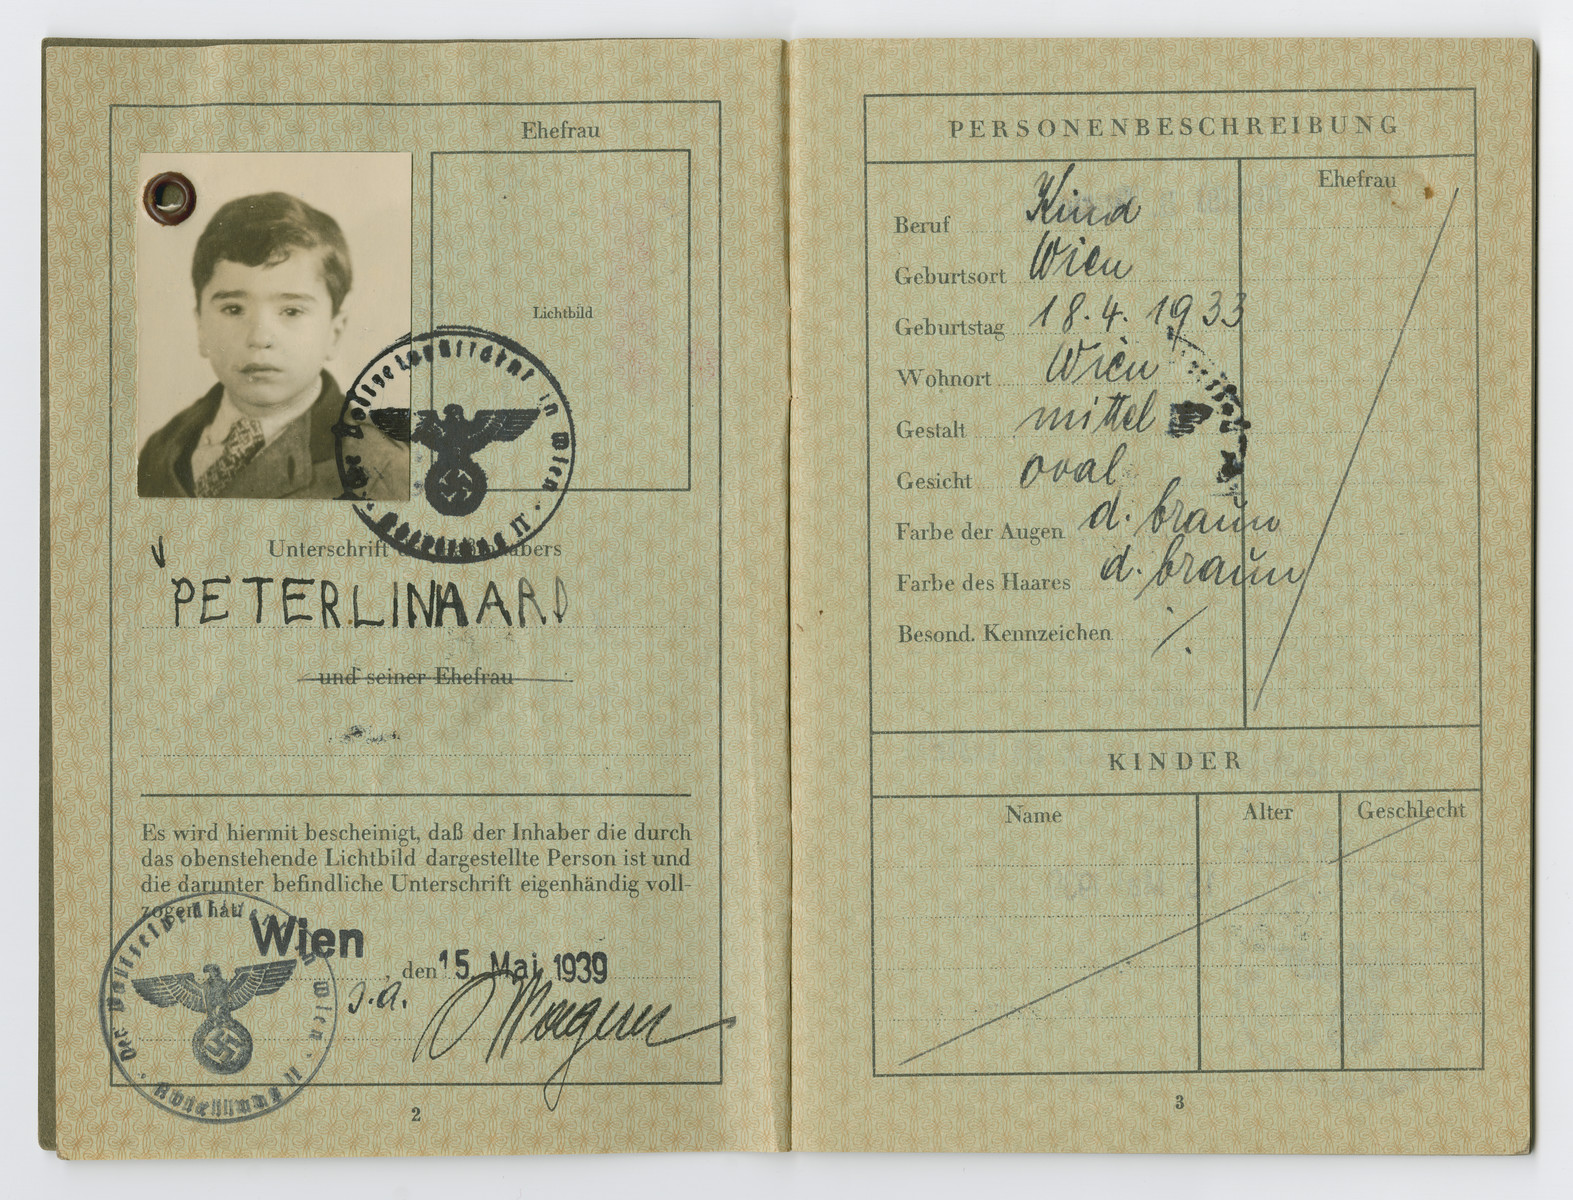 Identification papers issued to Peter Linhard stating he was born in Vienna on April 18, 1933.